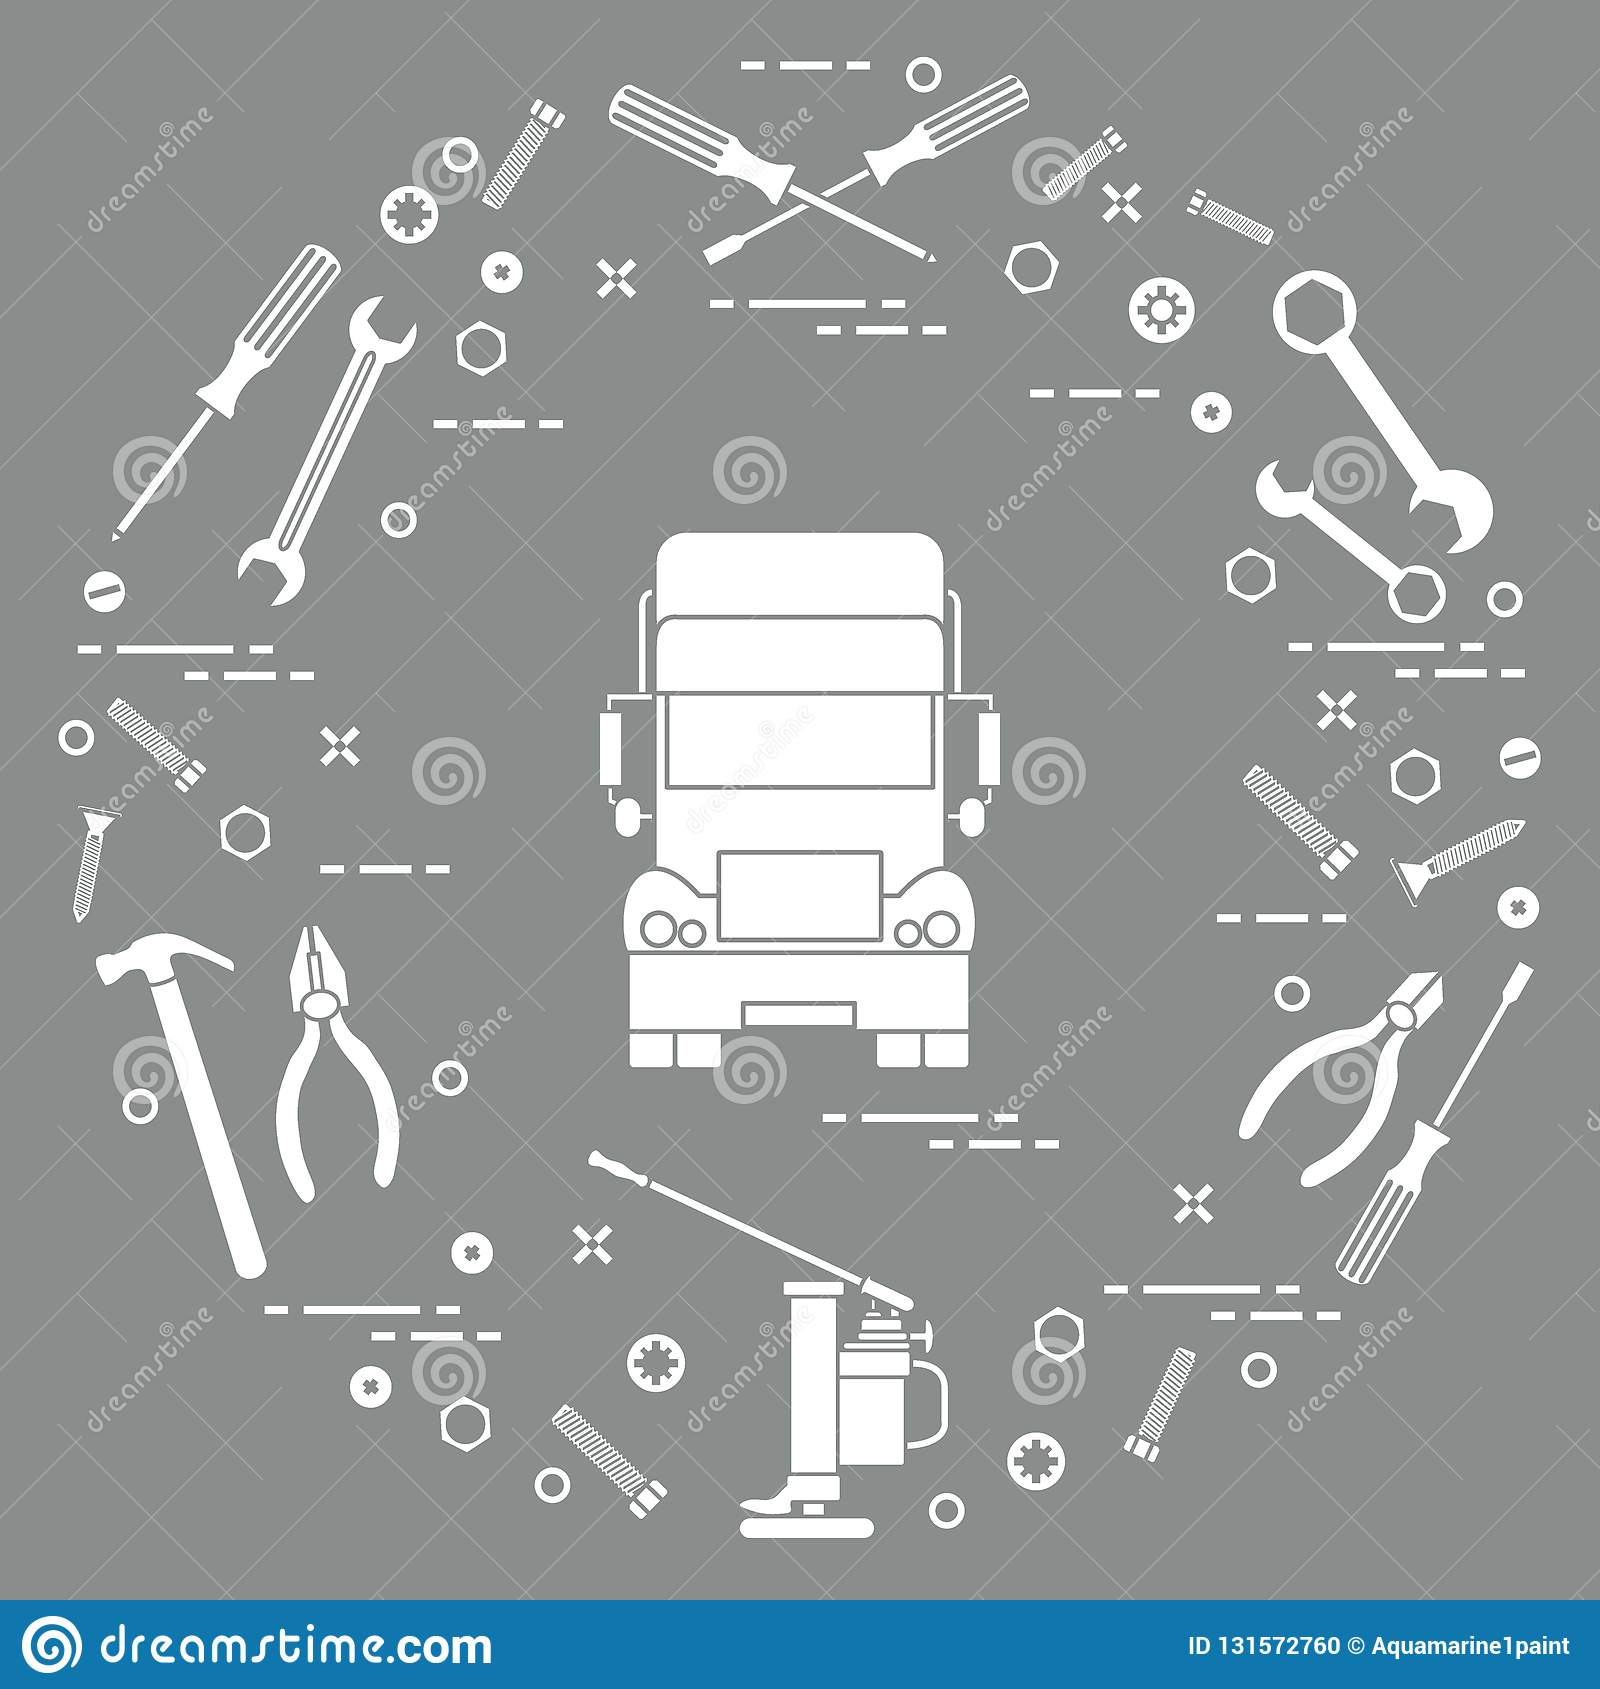 Repair cars: truck, wrenches, screws, key, pliers, jack, hammer, screwdriver. Design for announcement, advertisement, banner or